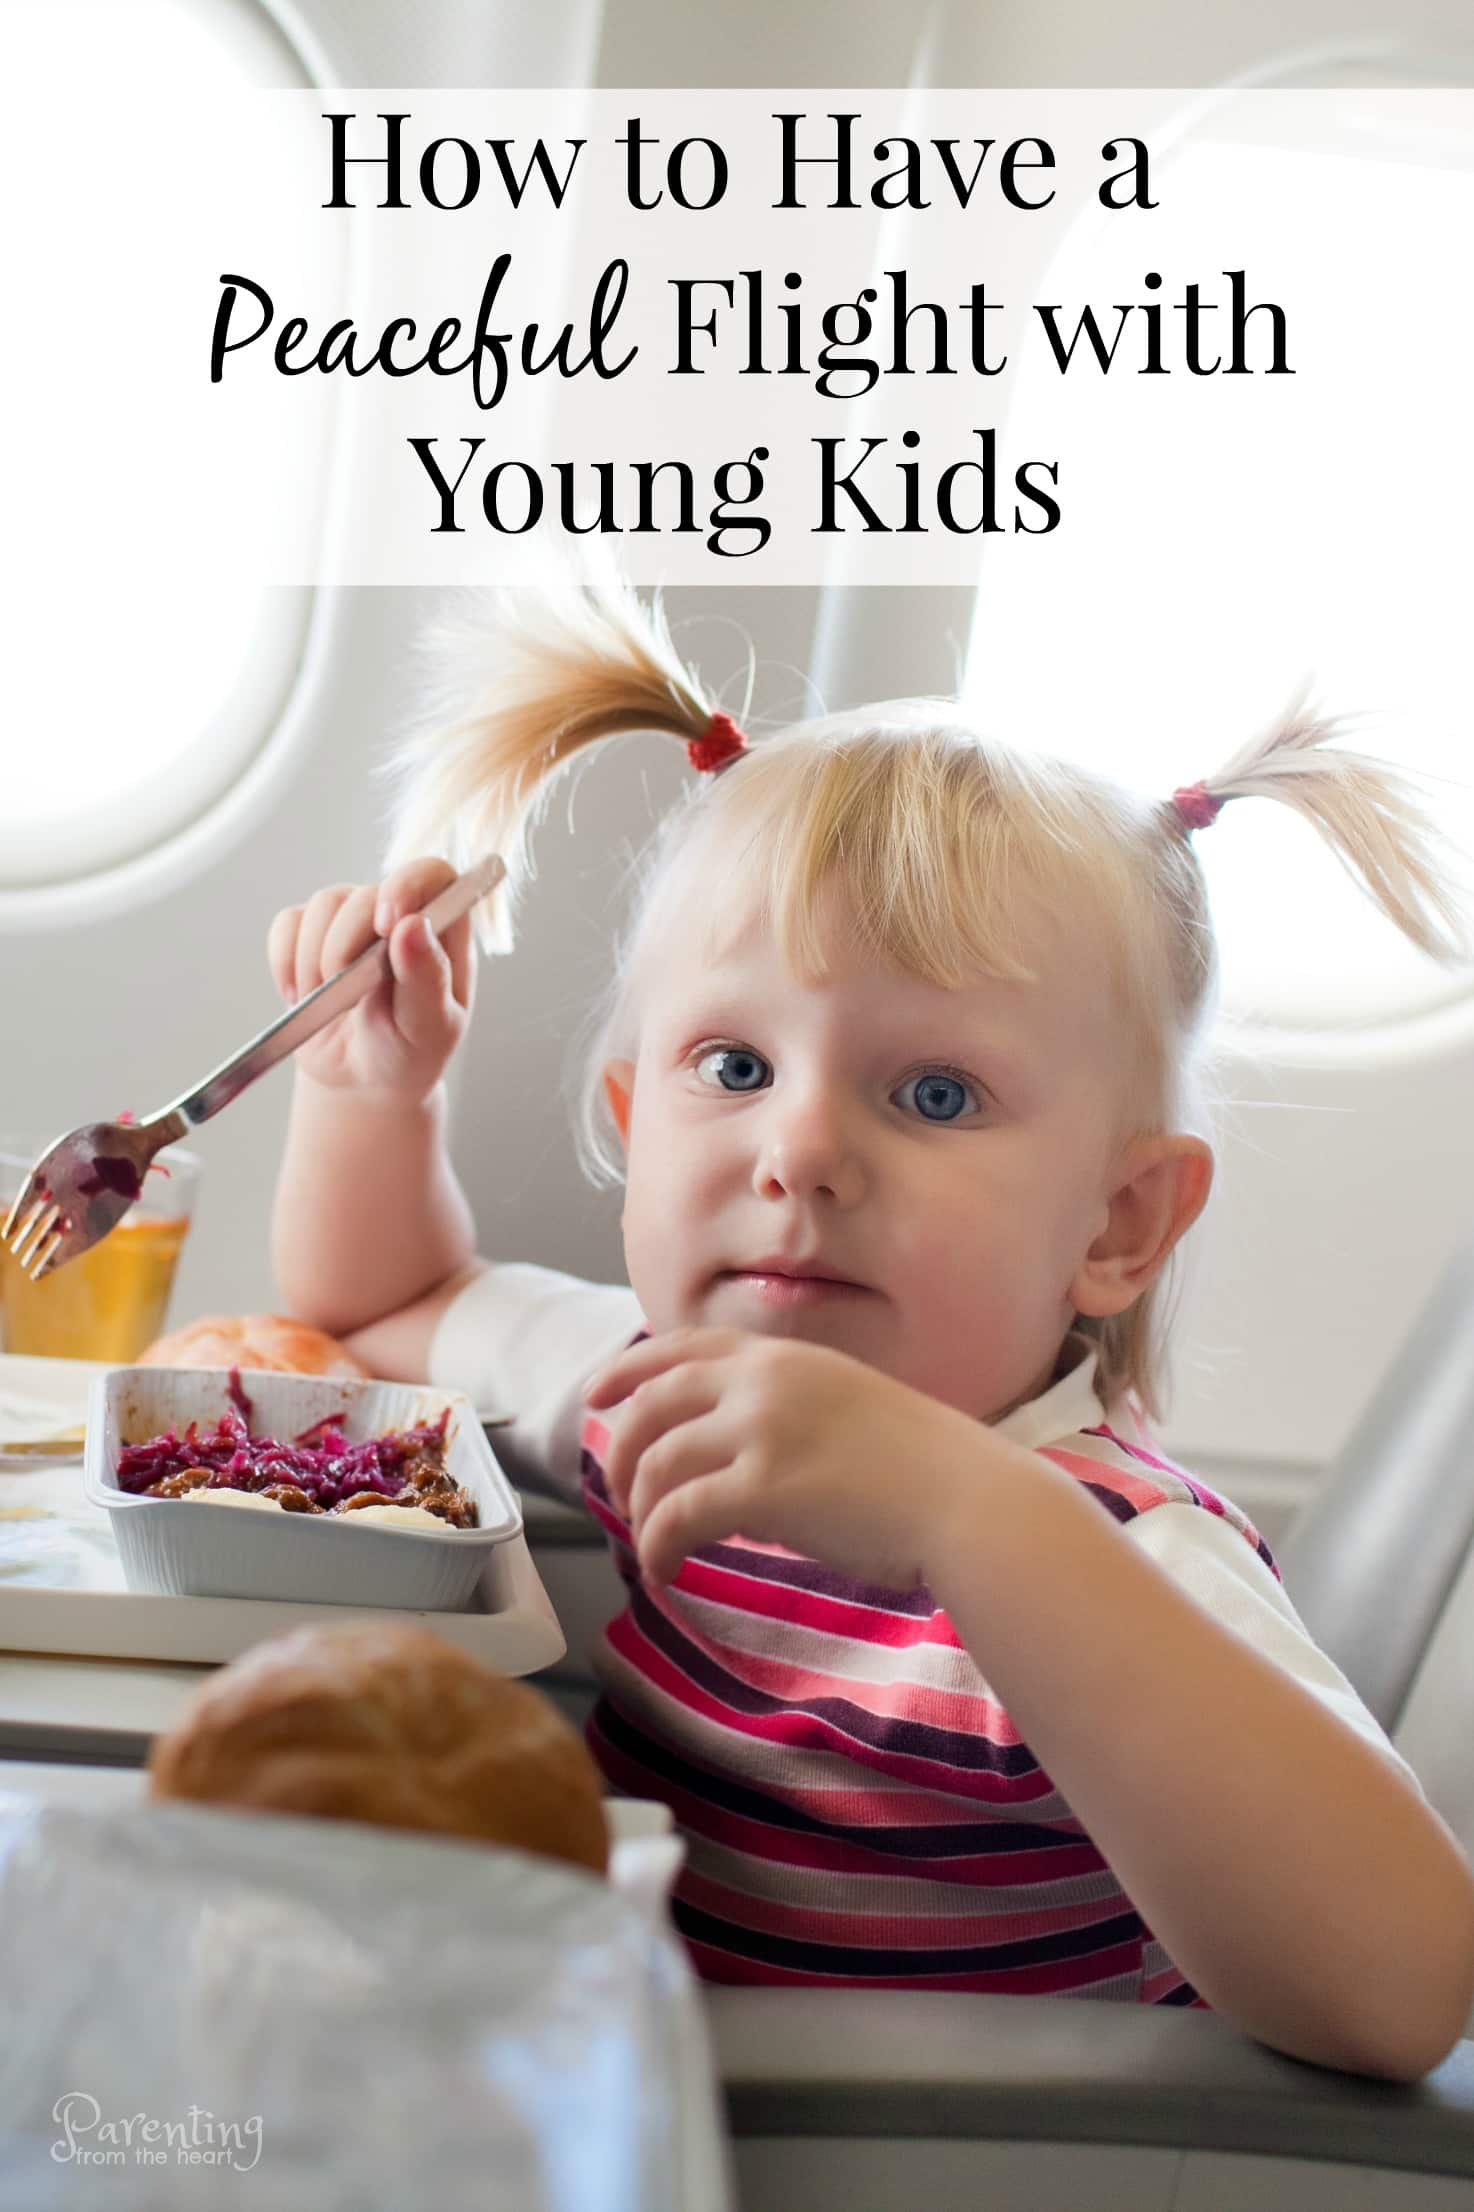 Travelling with kids can be daunting. Kids ask repeatedly if you're there yet. There can be tears, whining and fighting. Quickly, the start of your vacation can go from exciting to painful. Here are effective strategies for peacefully travelling with kids perfect for flight or road trips. #kids #travellingwithkids #flyingwithkids #parenting #roadtripwithkids #summervacation #kidsactivitybooks #kidsactivities